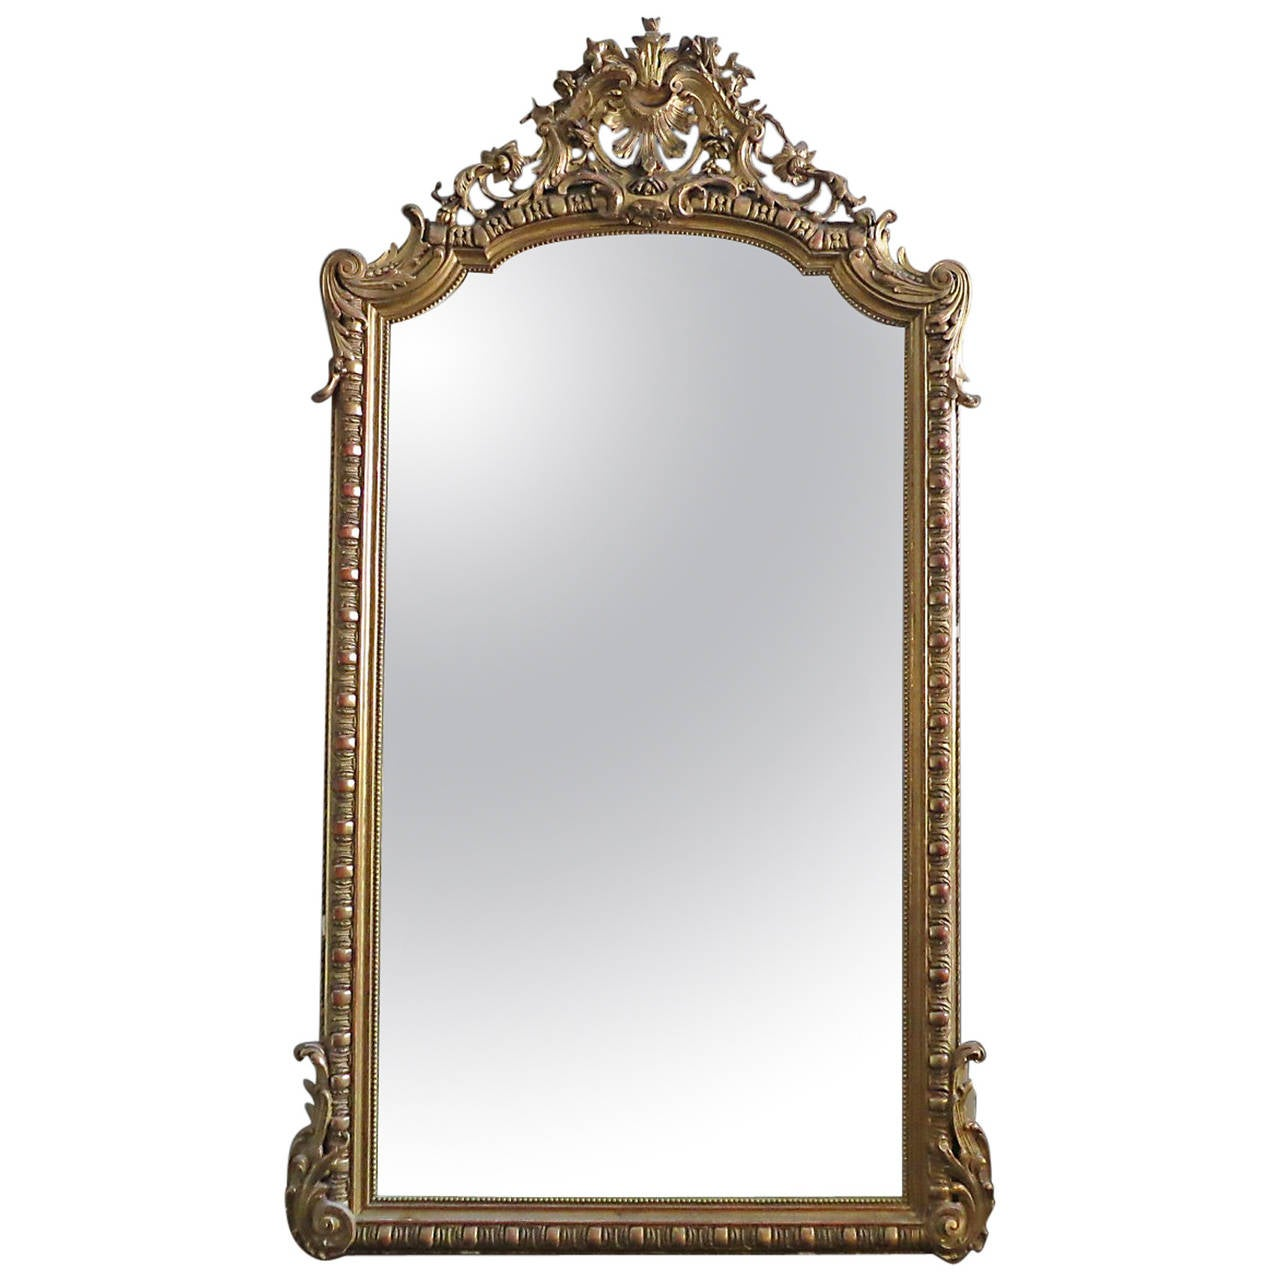 Large antique french gold gilt mirror at 1stdibs for Big gold mirror